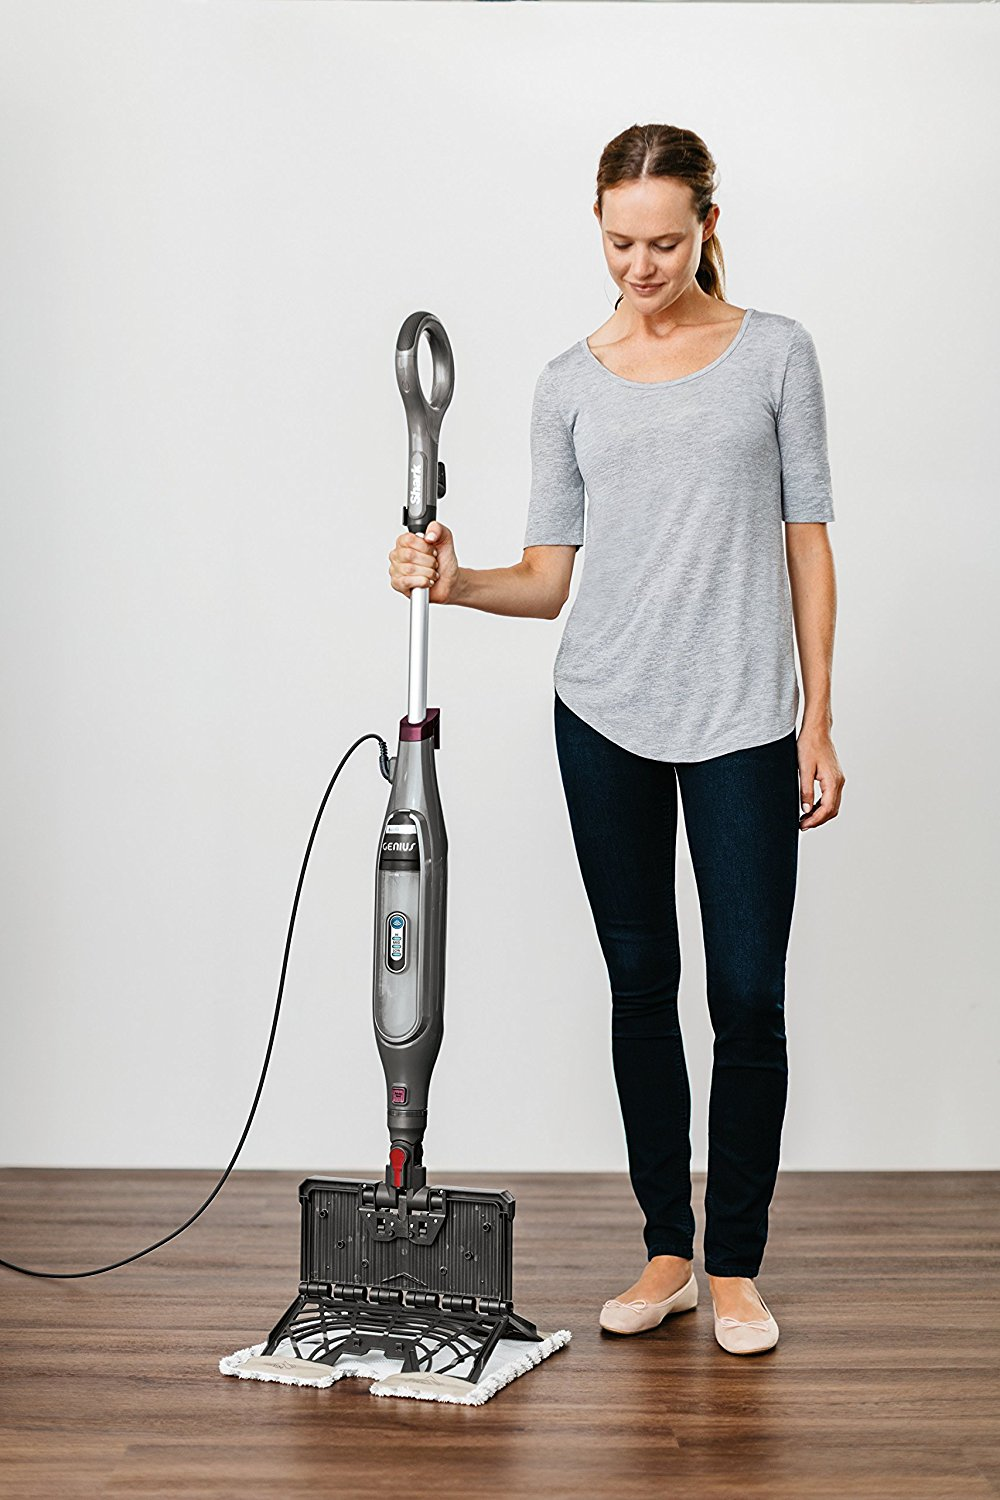 shark genius steam mop slate floors